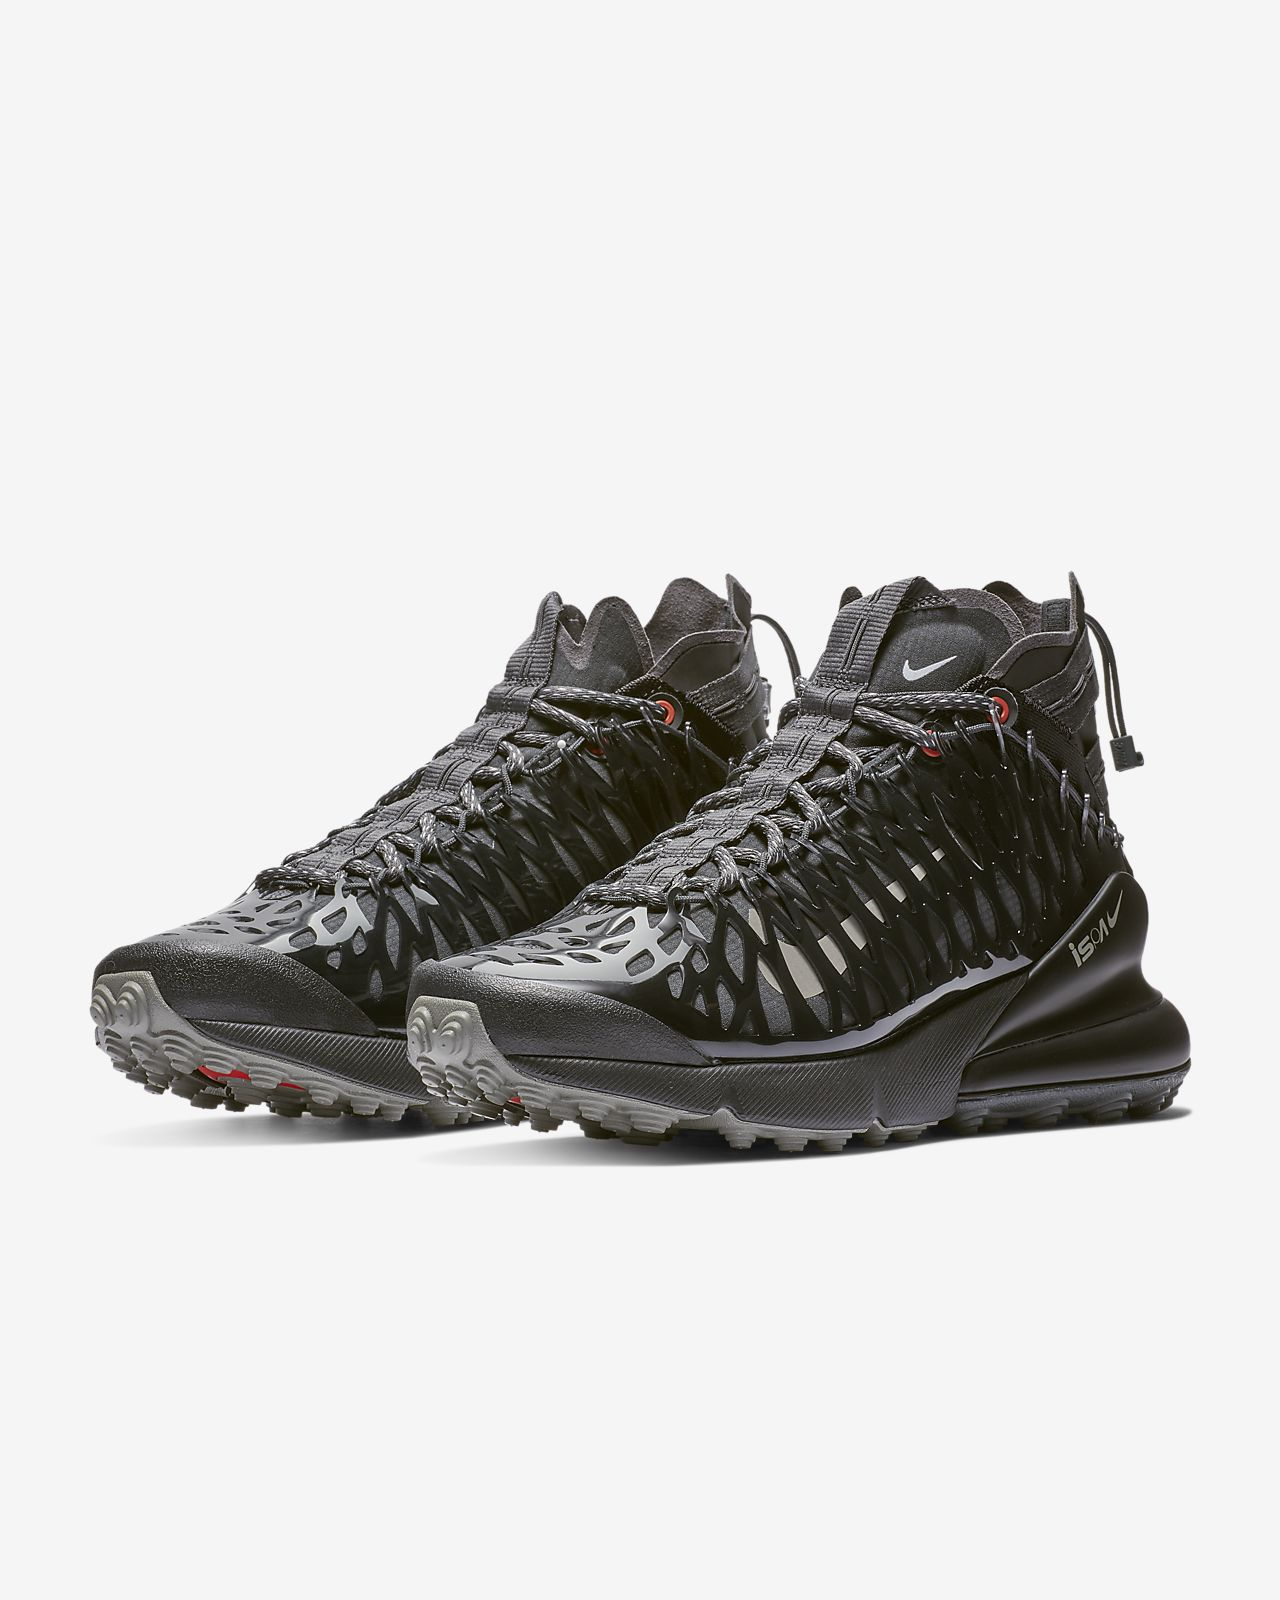 6ed0e9aa41a Nike Air Max 270 ISPA Men's Shoe. Nike.com